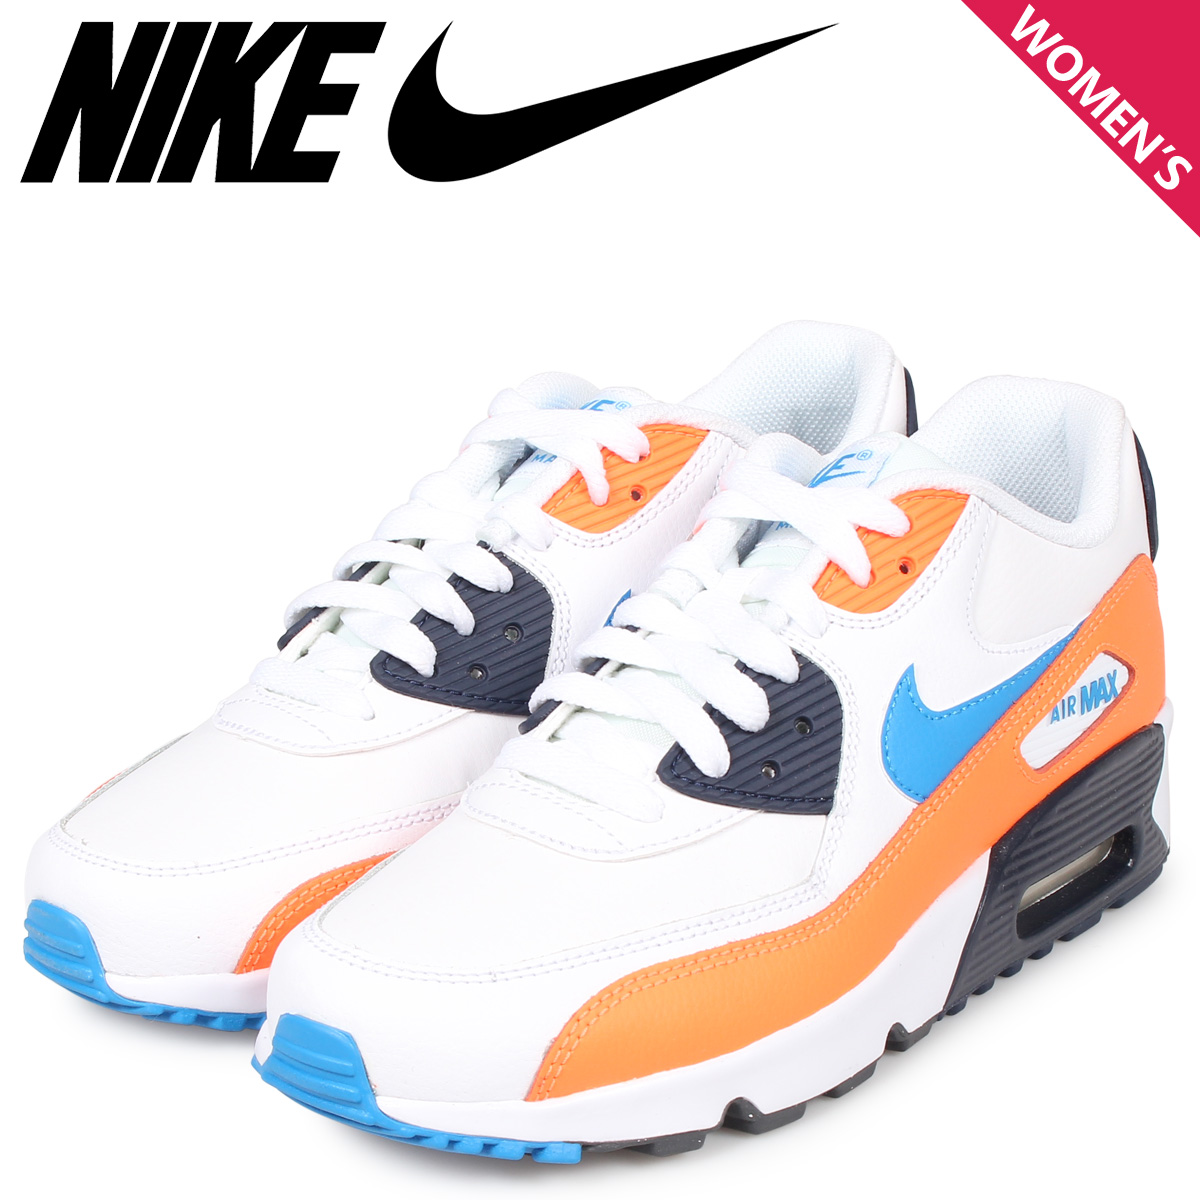 NIKE Kie Ney AMAX 90 sneakers Lady's AIR MAX 90 LEATHER GS white white 833,412 116 [94 Shinnyu load]